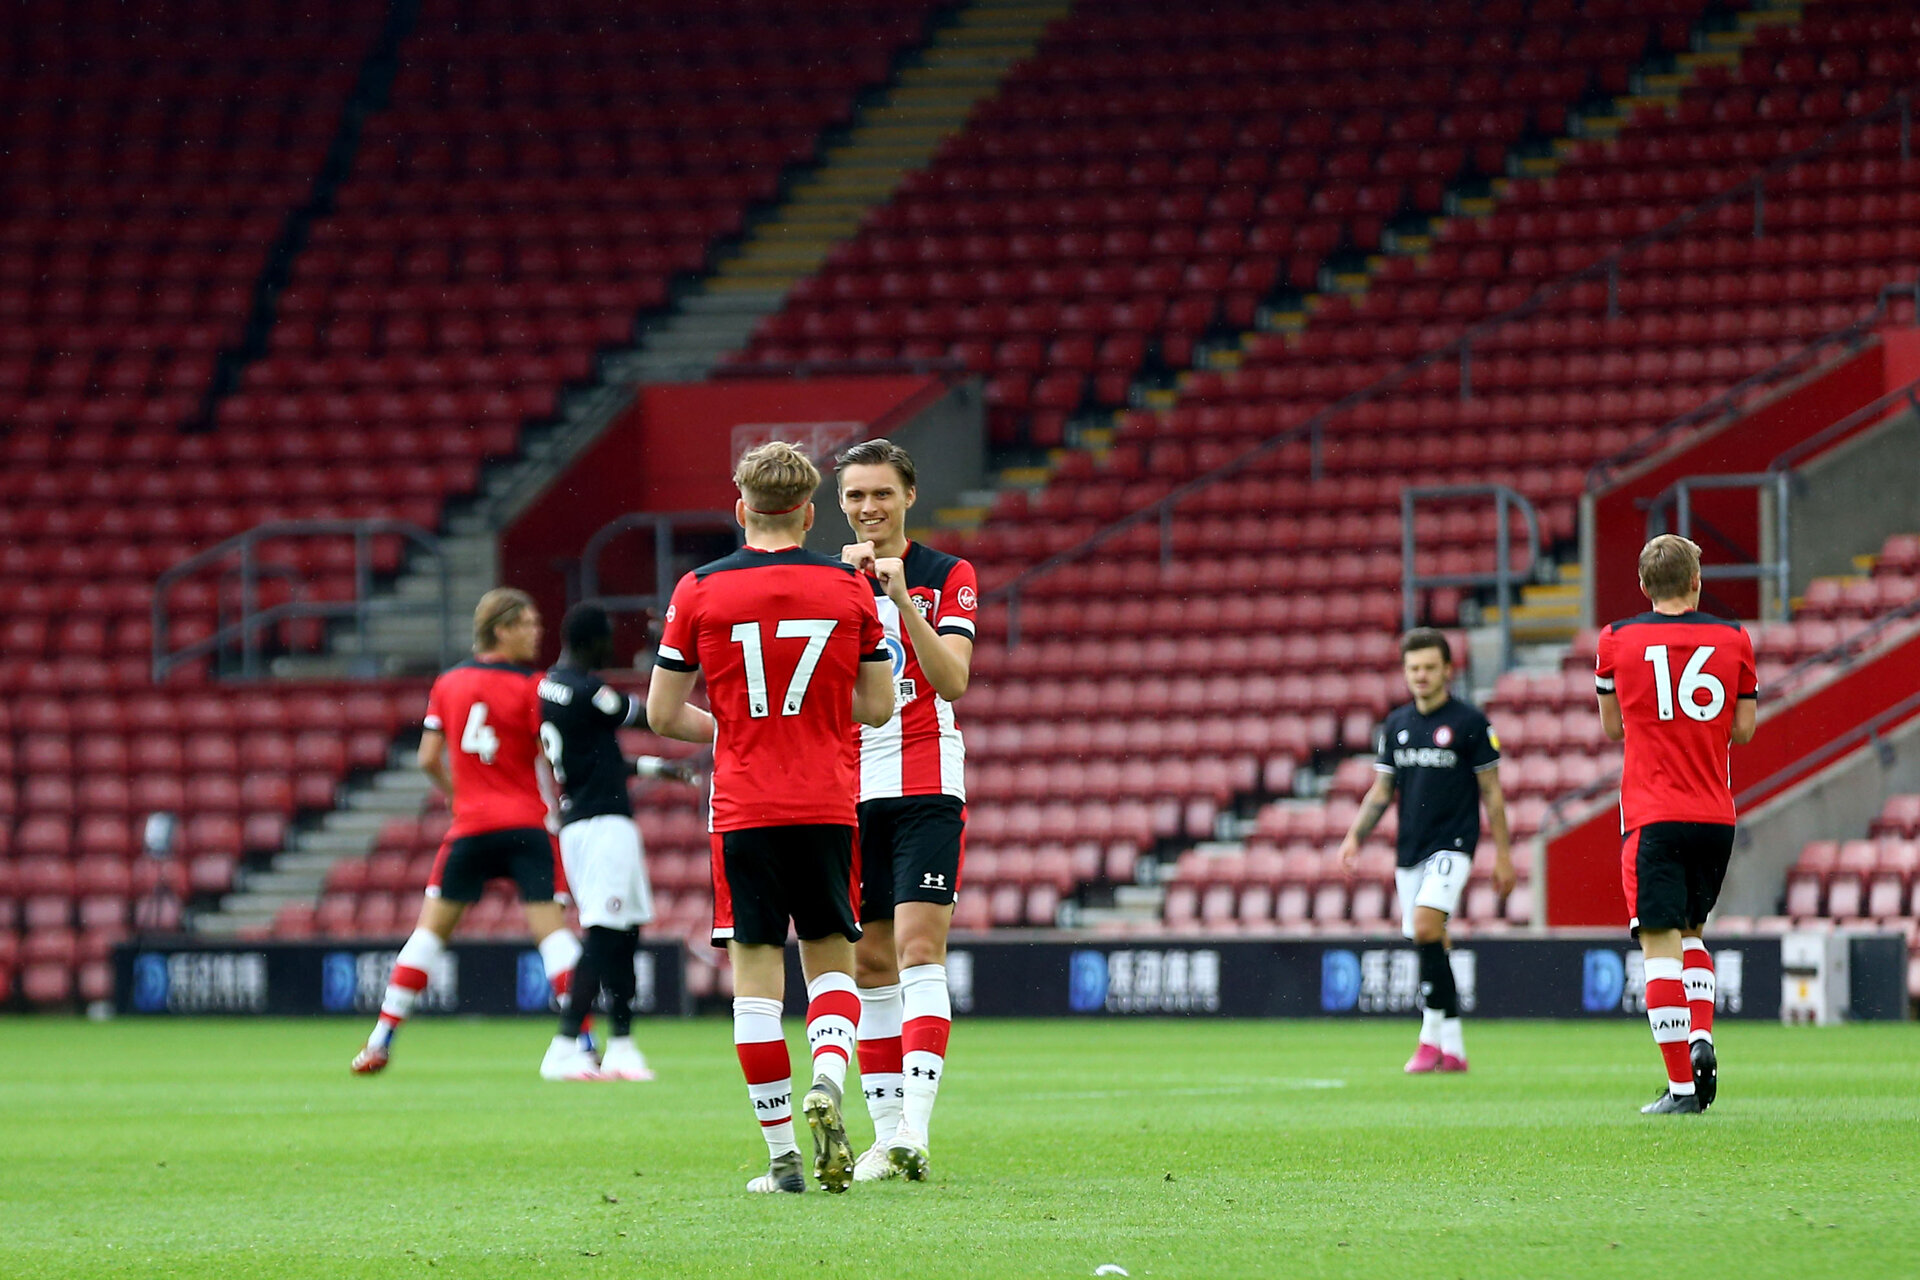 SOUTHAMPTON, ENGLAND - JUNE 12: Stuart Armstrong (L) and Will Smallbone (R) during a friendly match between Southampton FC and Bristol City, ahead of the Premier League re-start, at St Mary's Stadium on June 12, 2020 in Southampton, England. (Photo by Matt Watson/Southampton FC via Getty Images)